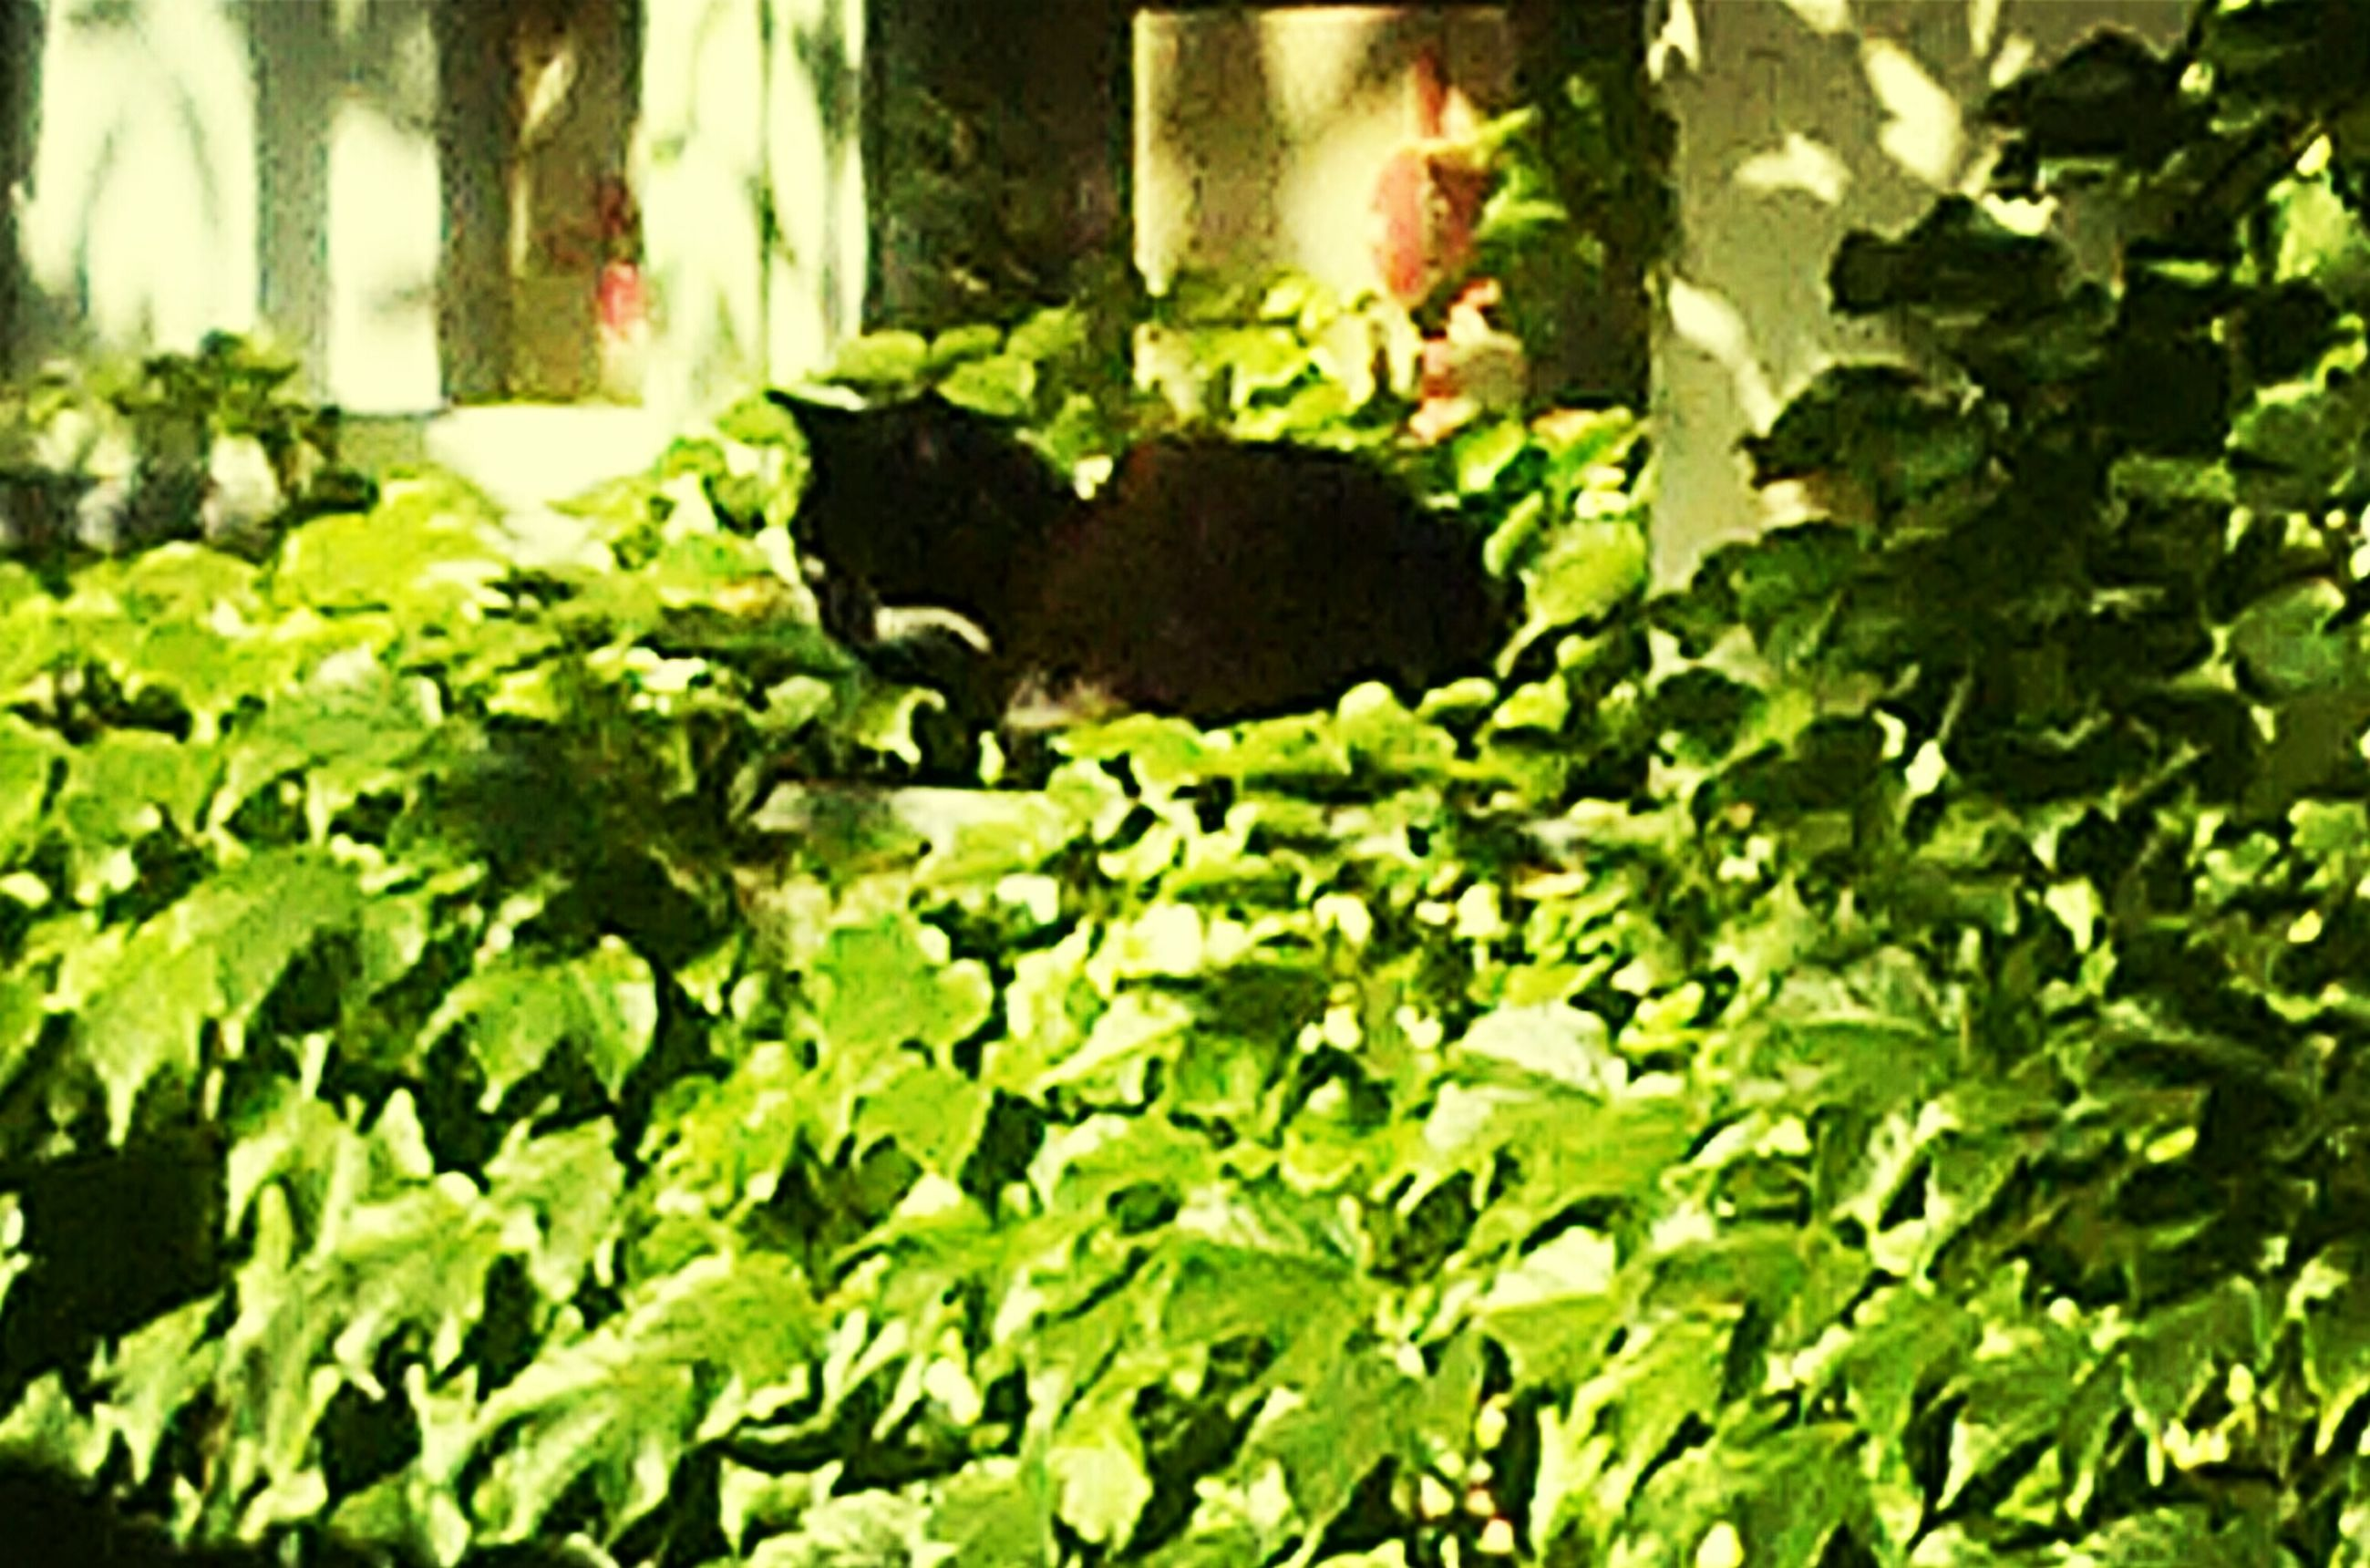 animal themes, plant, one animal, green color, growth, leaf, pets, domestic animals, nature, domestic cat, potted plant, cat, no people, mammal, day, front or back yard, wildlife, outdoors, bird, high angle view